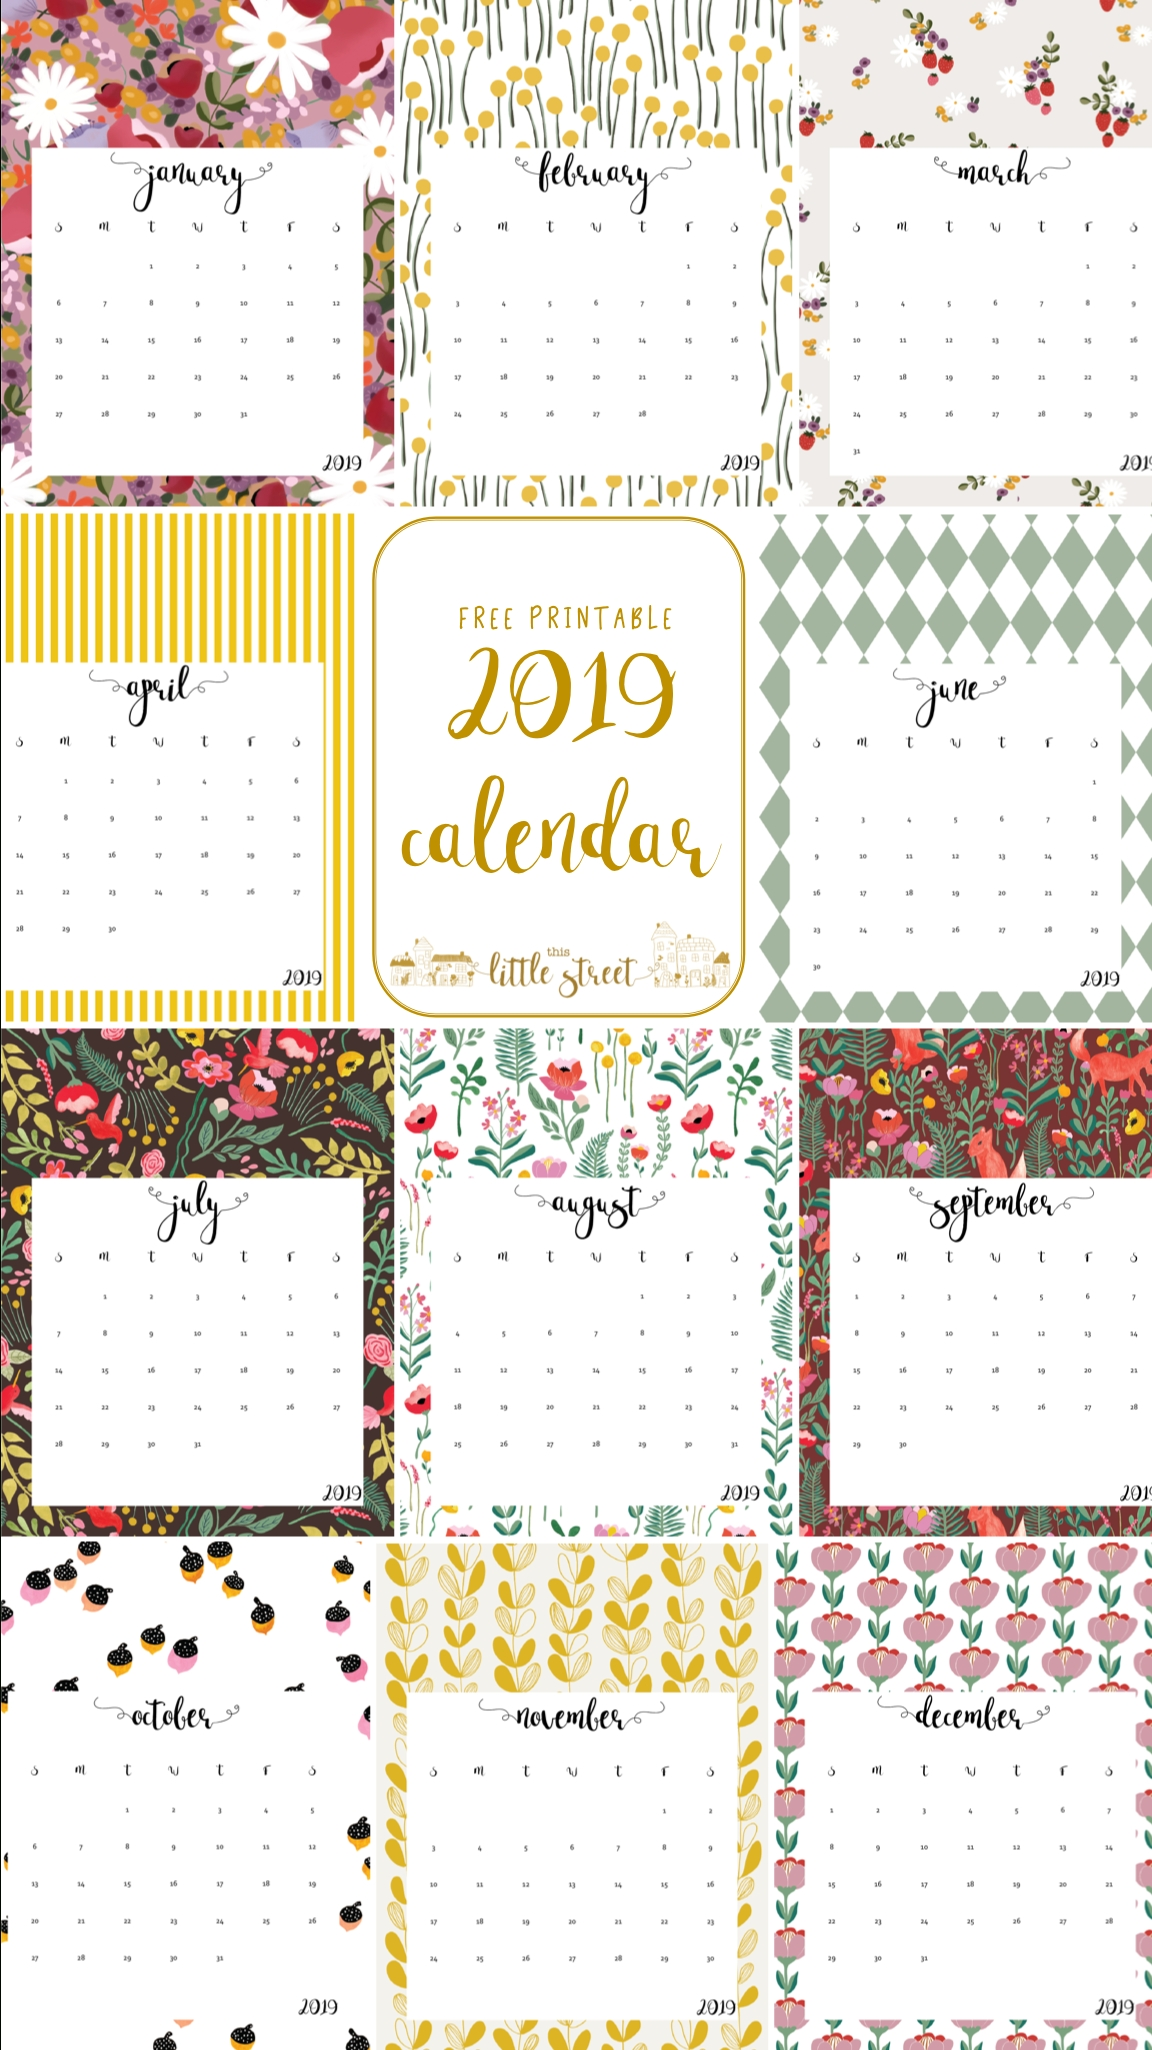 2019 Calendar - Free Printable! | This Little Street : This